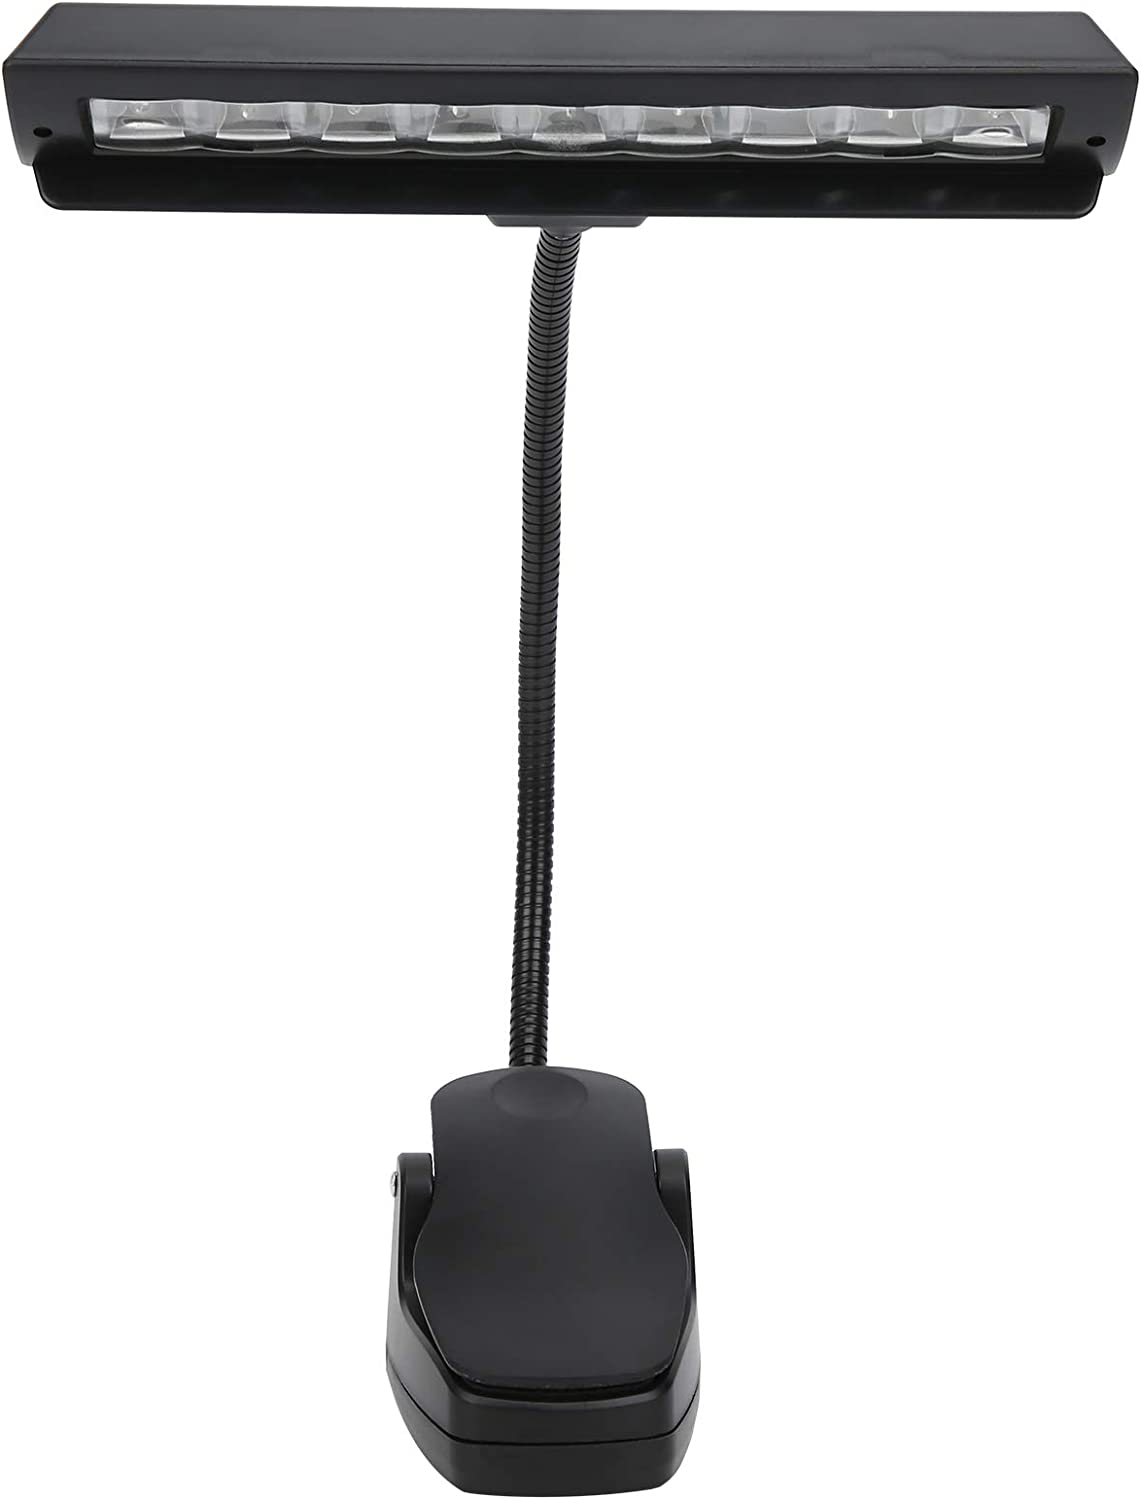 Music Stand Light Max 61% OFF 2 Levels Dimmable LED Professional Ranking TOP6 L Desk USB